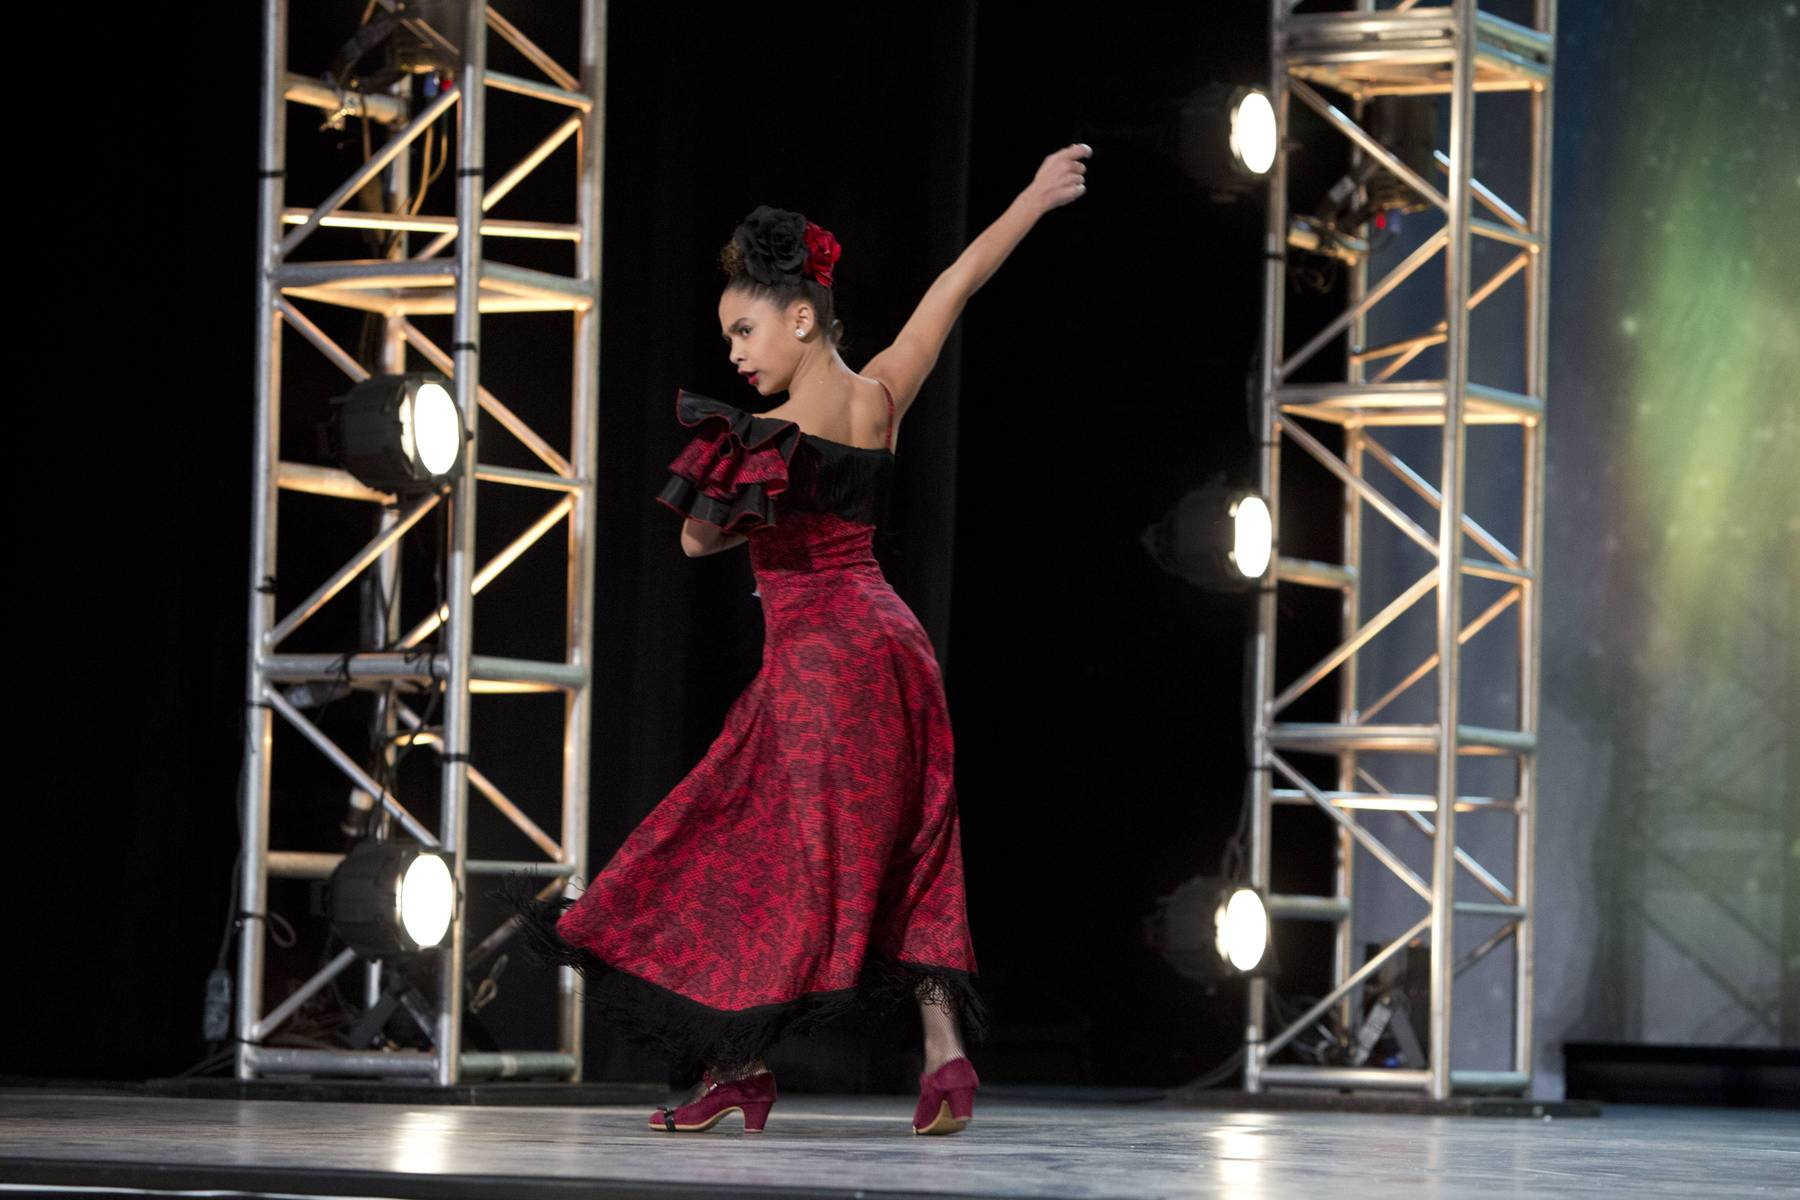 New York City auditions for SYTYCD Season 13